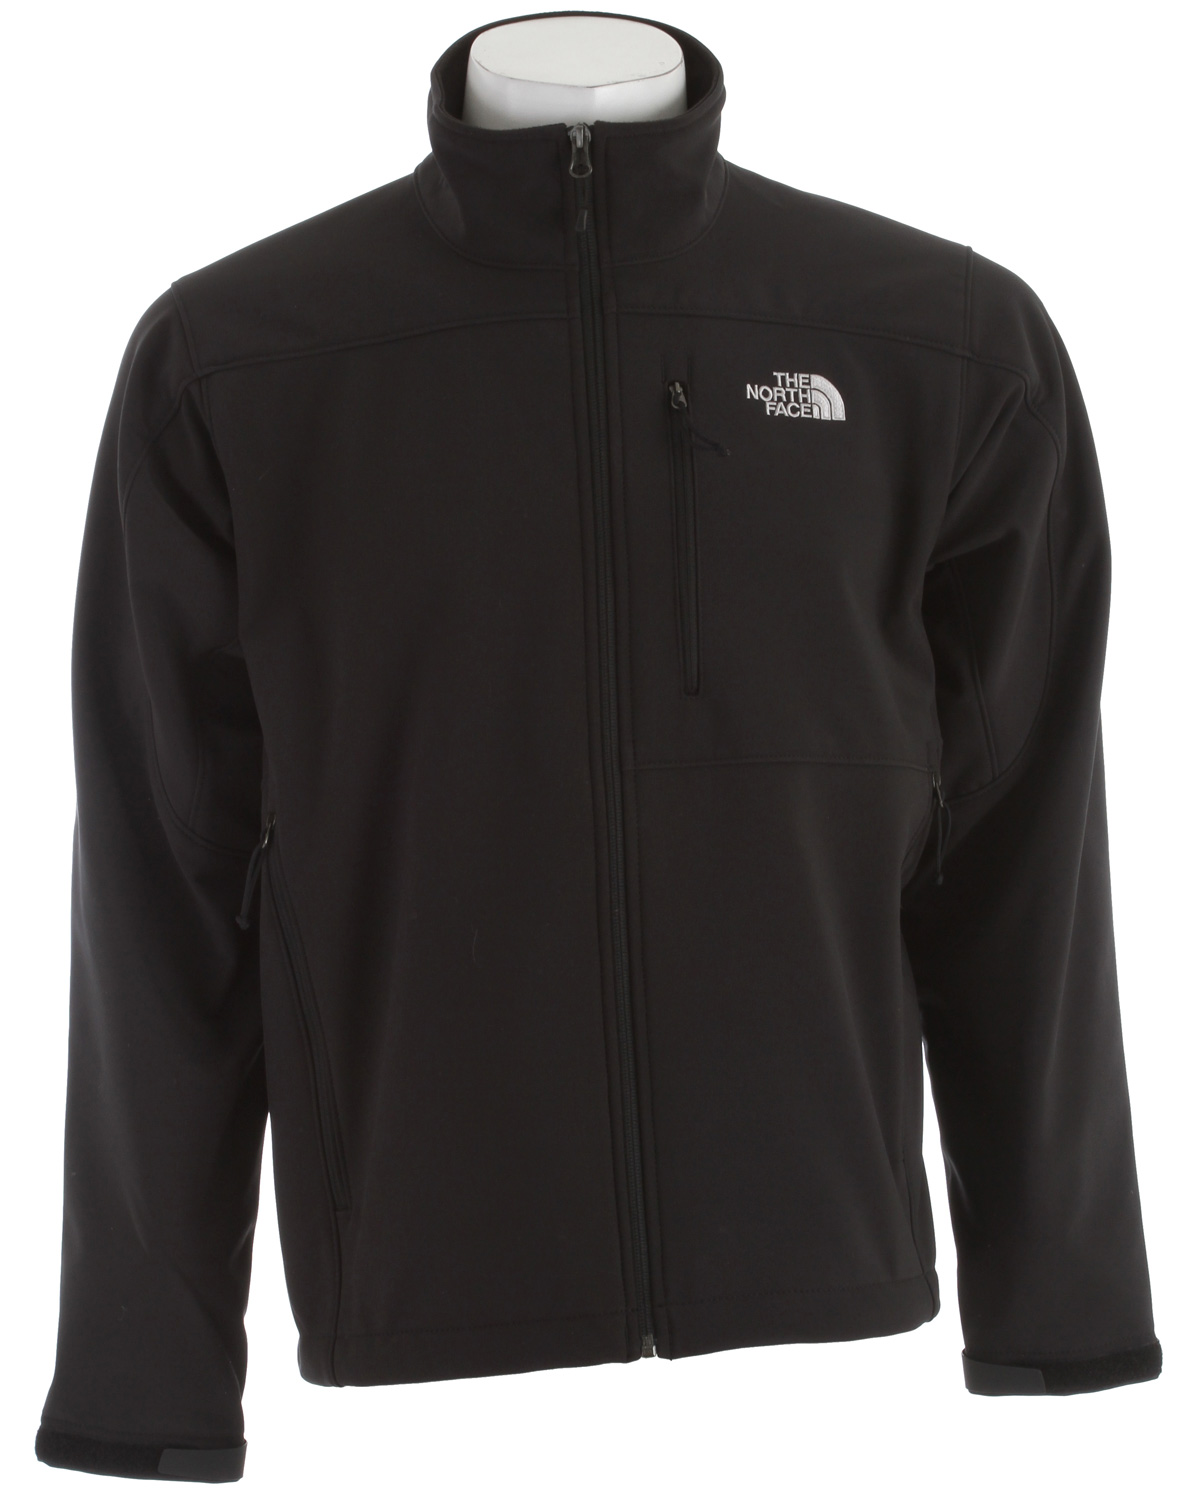 "Most versatile and widely worn soft shell has enhanced windproof features and a stretchy, comfortable fit; ideal for multiple activities.Key Features of The North Face Apex Bionic Jacket: Average Weight: 650g (22.93oz) Center back: 28"" Fabric: 90D 351g/m2 (10.3 oz/yd2) Plain weave polyester TNF Apex ClimateBlock with Fleece backer TNF™Apex ClimateBlock 100%windproof fabric Fleece backer Napoleon chest pocket Two secure-zip hand pockets Velcro® adjustable cuffs with molded cuff tabs Hem cinch-cord adjustment in pockets - $148.95"